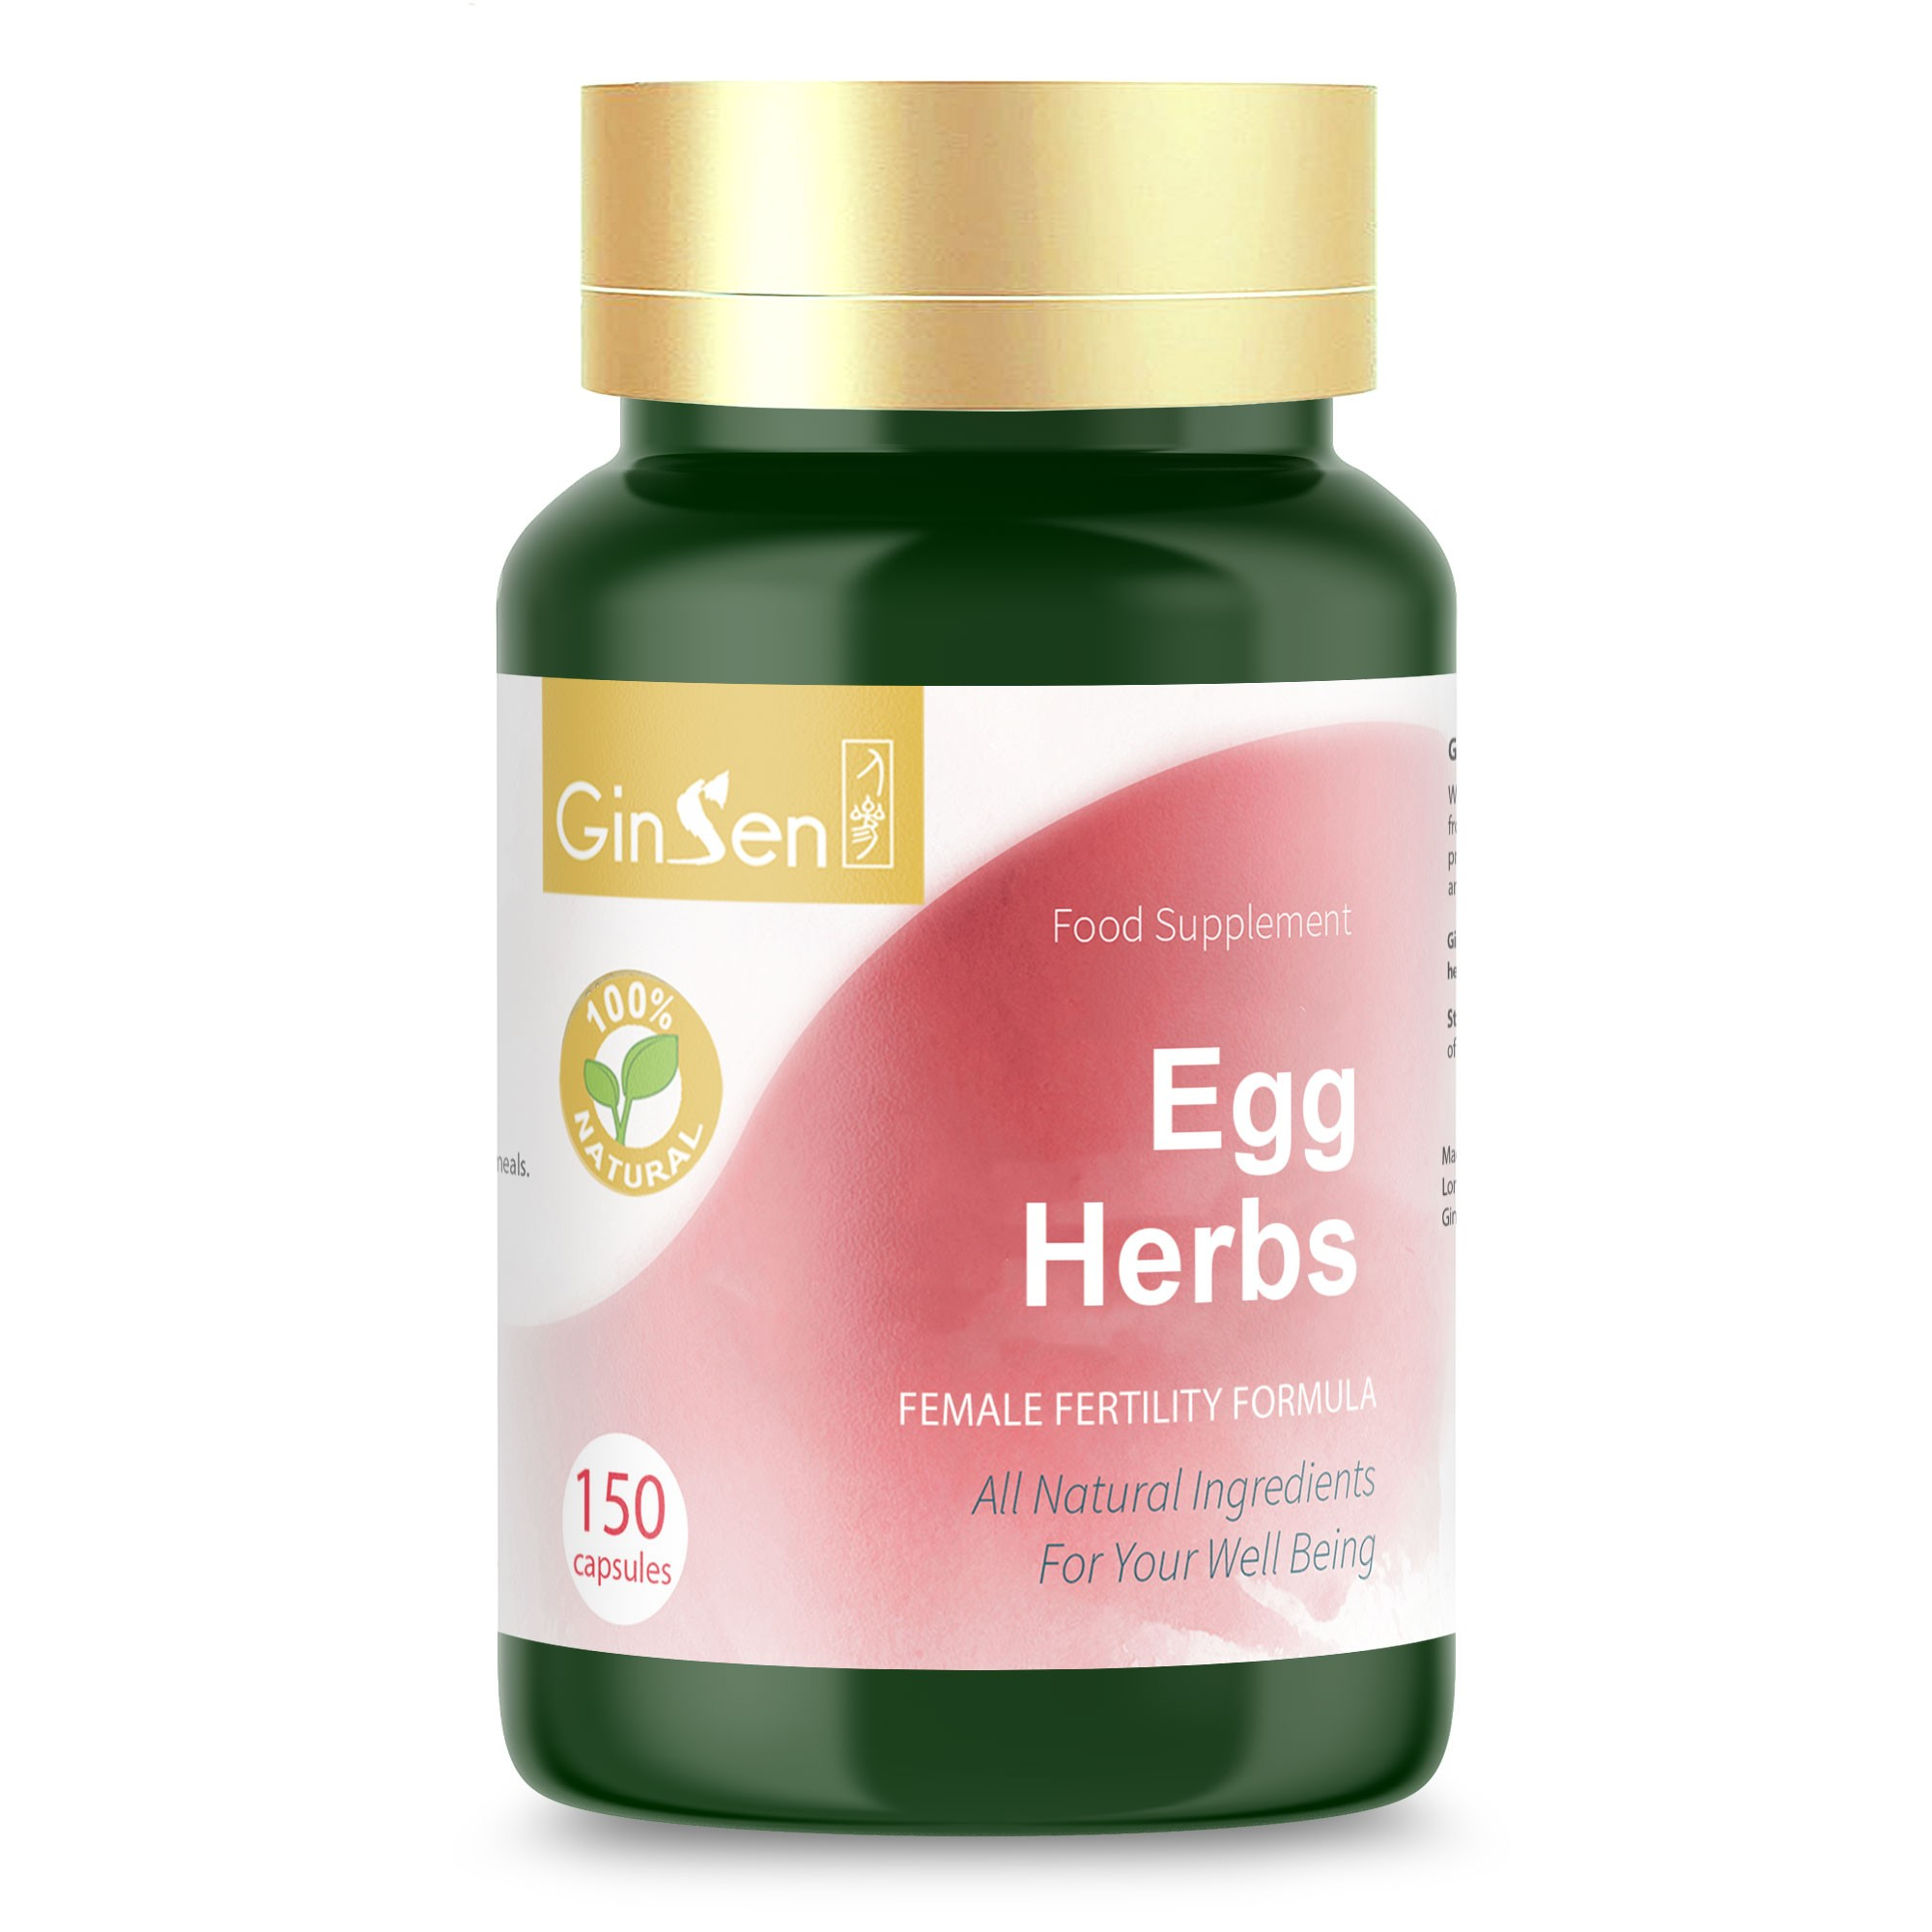 Egg Herbs by GinSen Supplements For Egg Quality